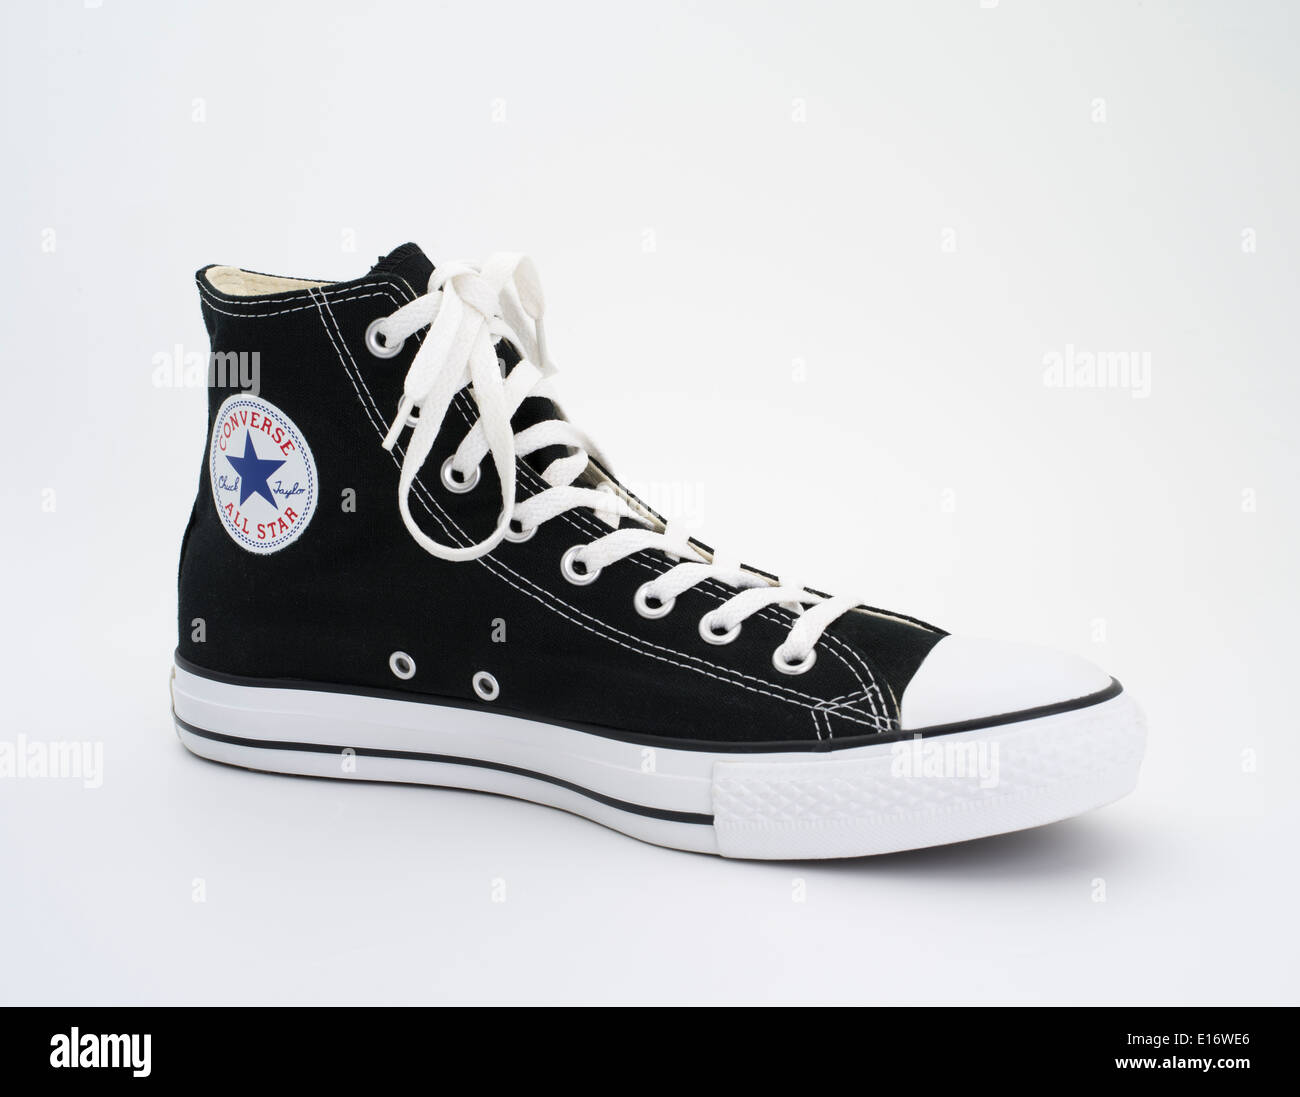 converse all star chuck taylor blanche christelle. Black Bedroom Furniture Sets. Home Design Ideas